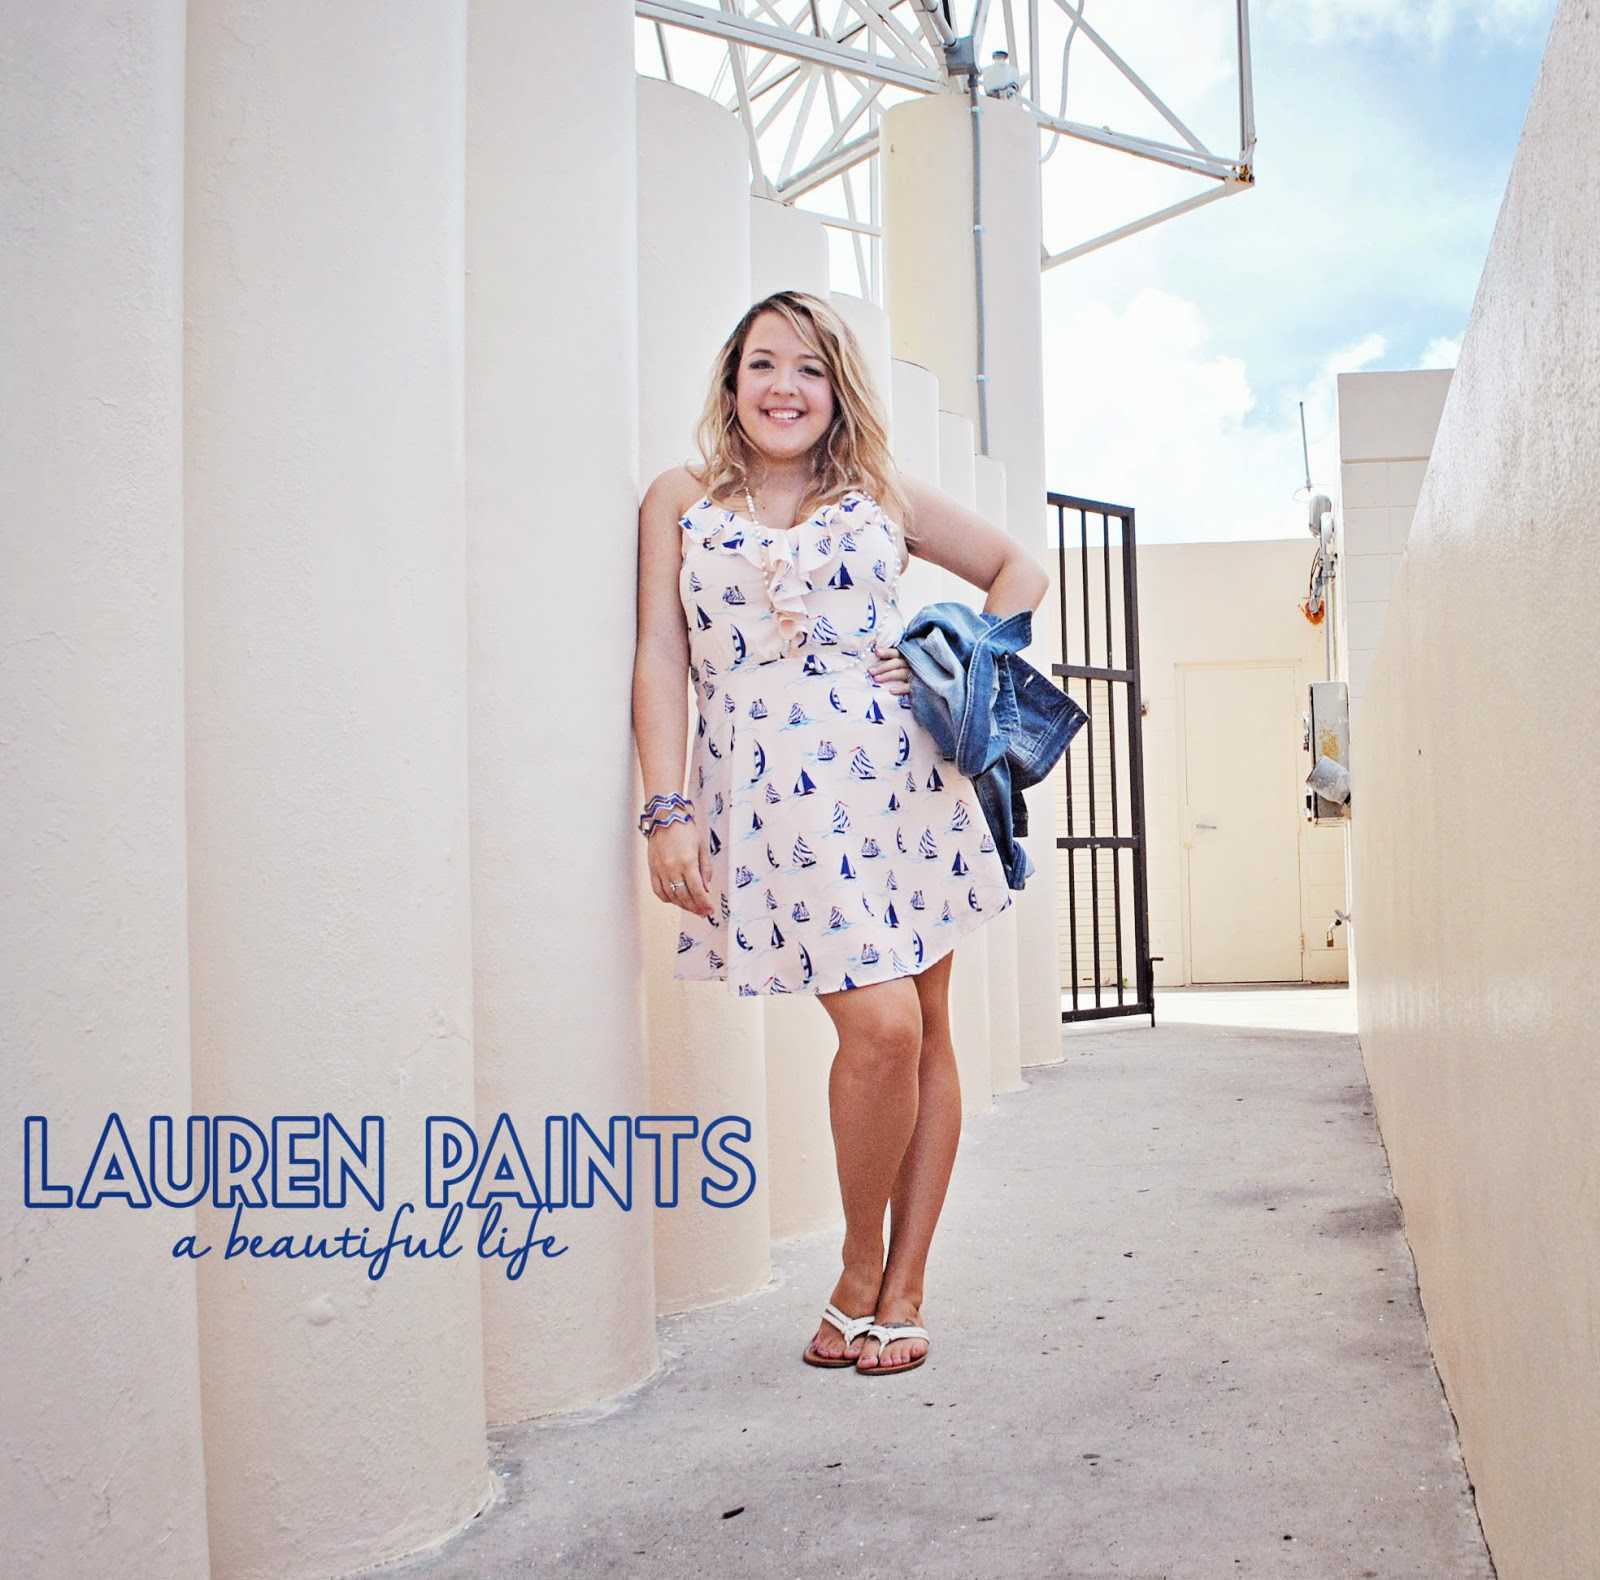 Pin Up Darling OOTD and Lauren Paints | a beautiful life outfit giveaway - Back to School with Class & Curves - Six Simple tips to help you dress confidently